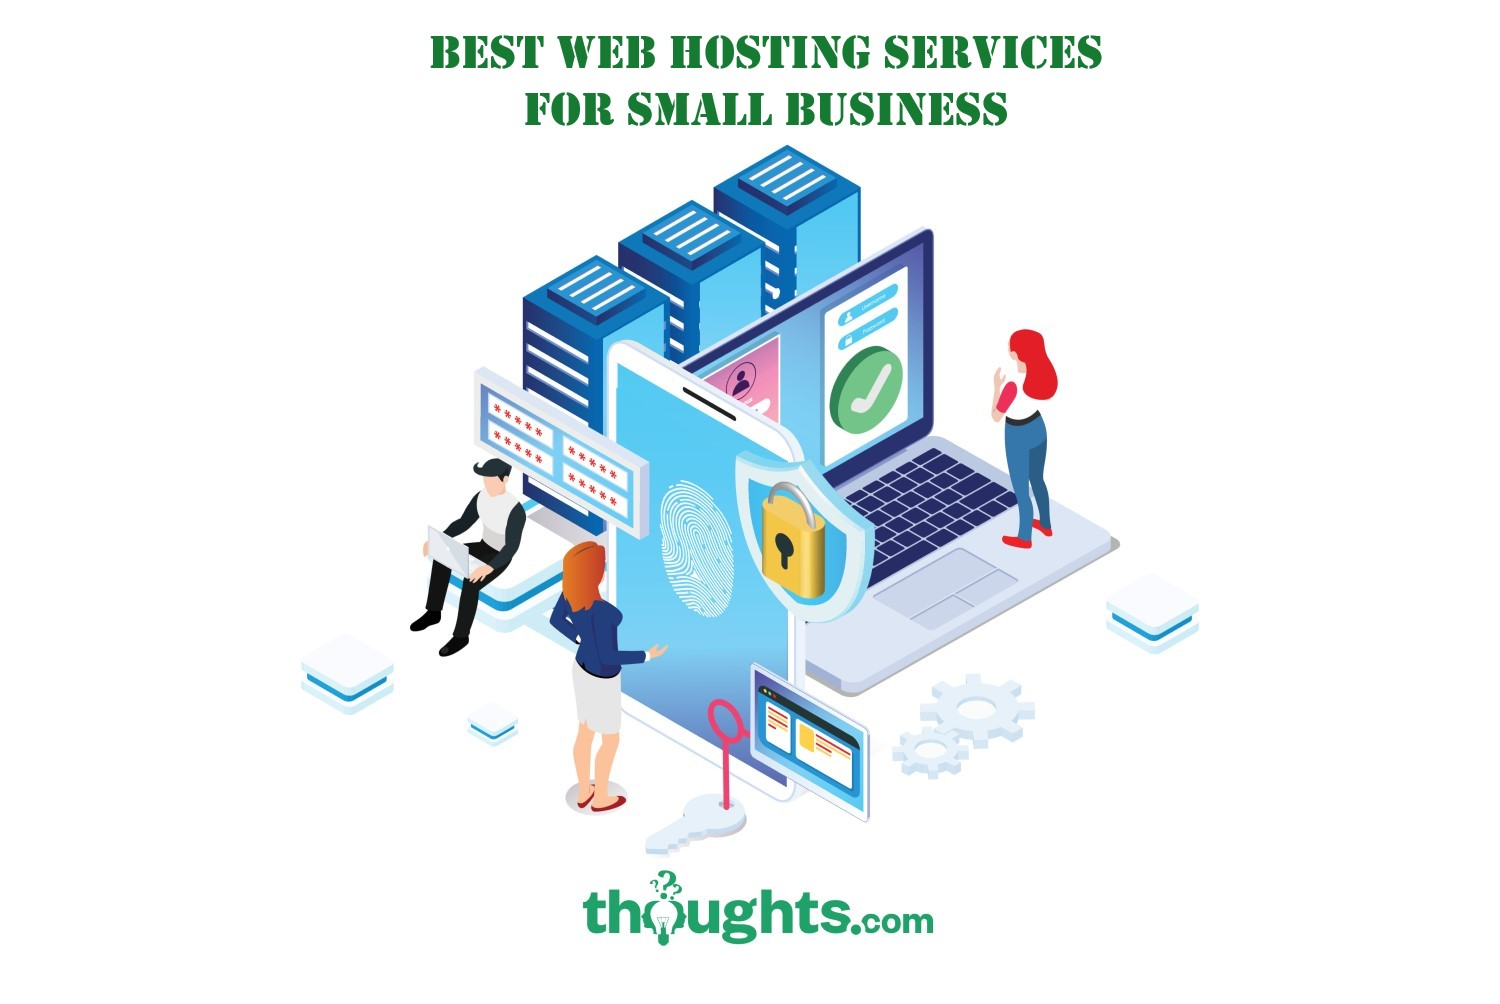 Best Web Hosting Services for Small Businesses in 2021